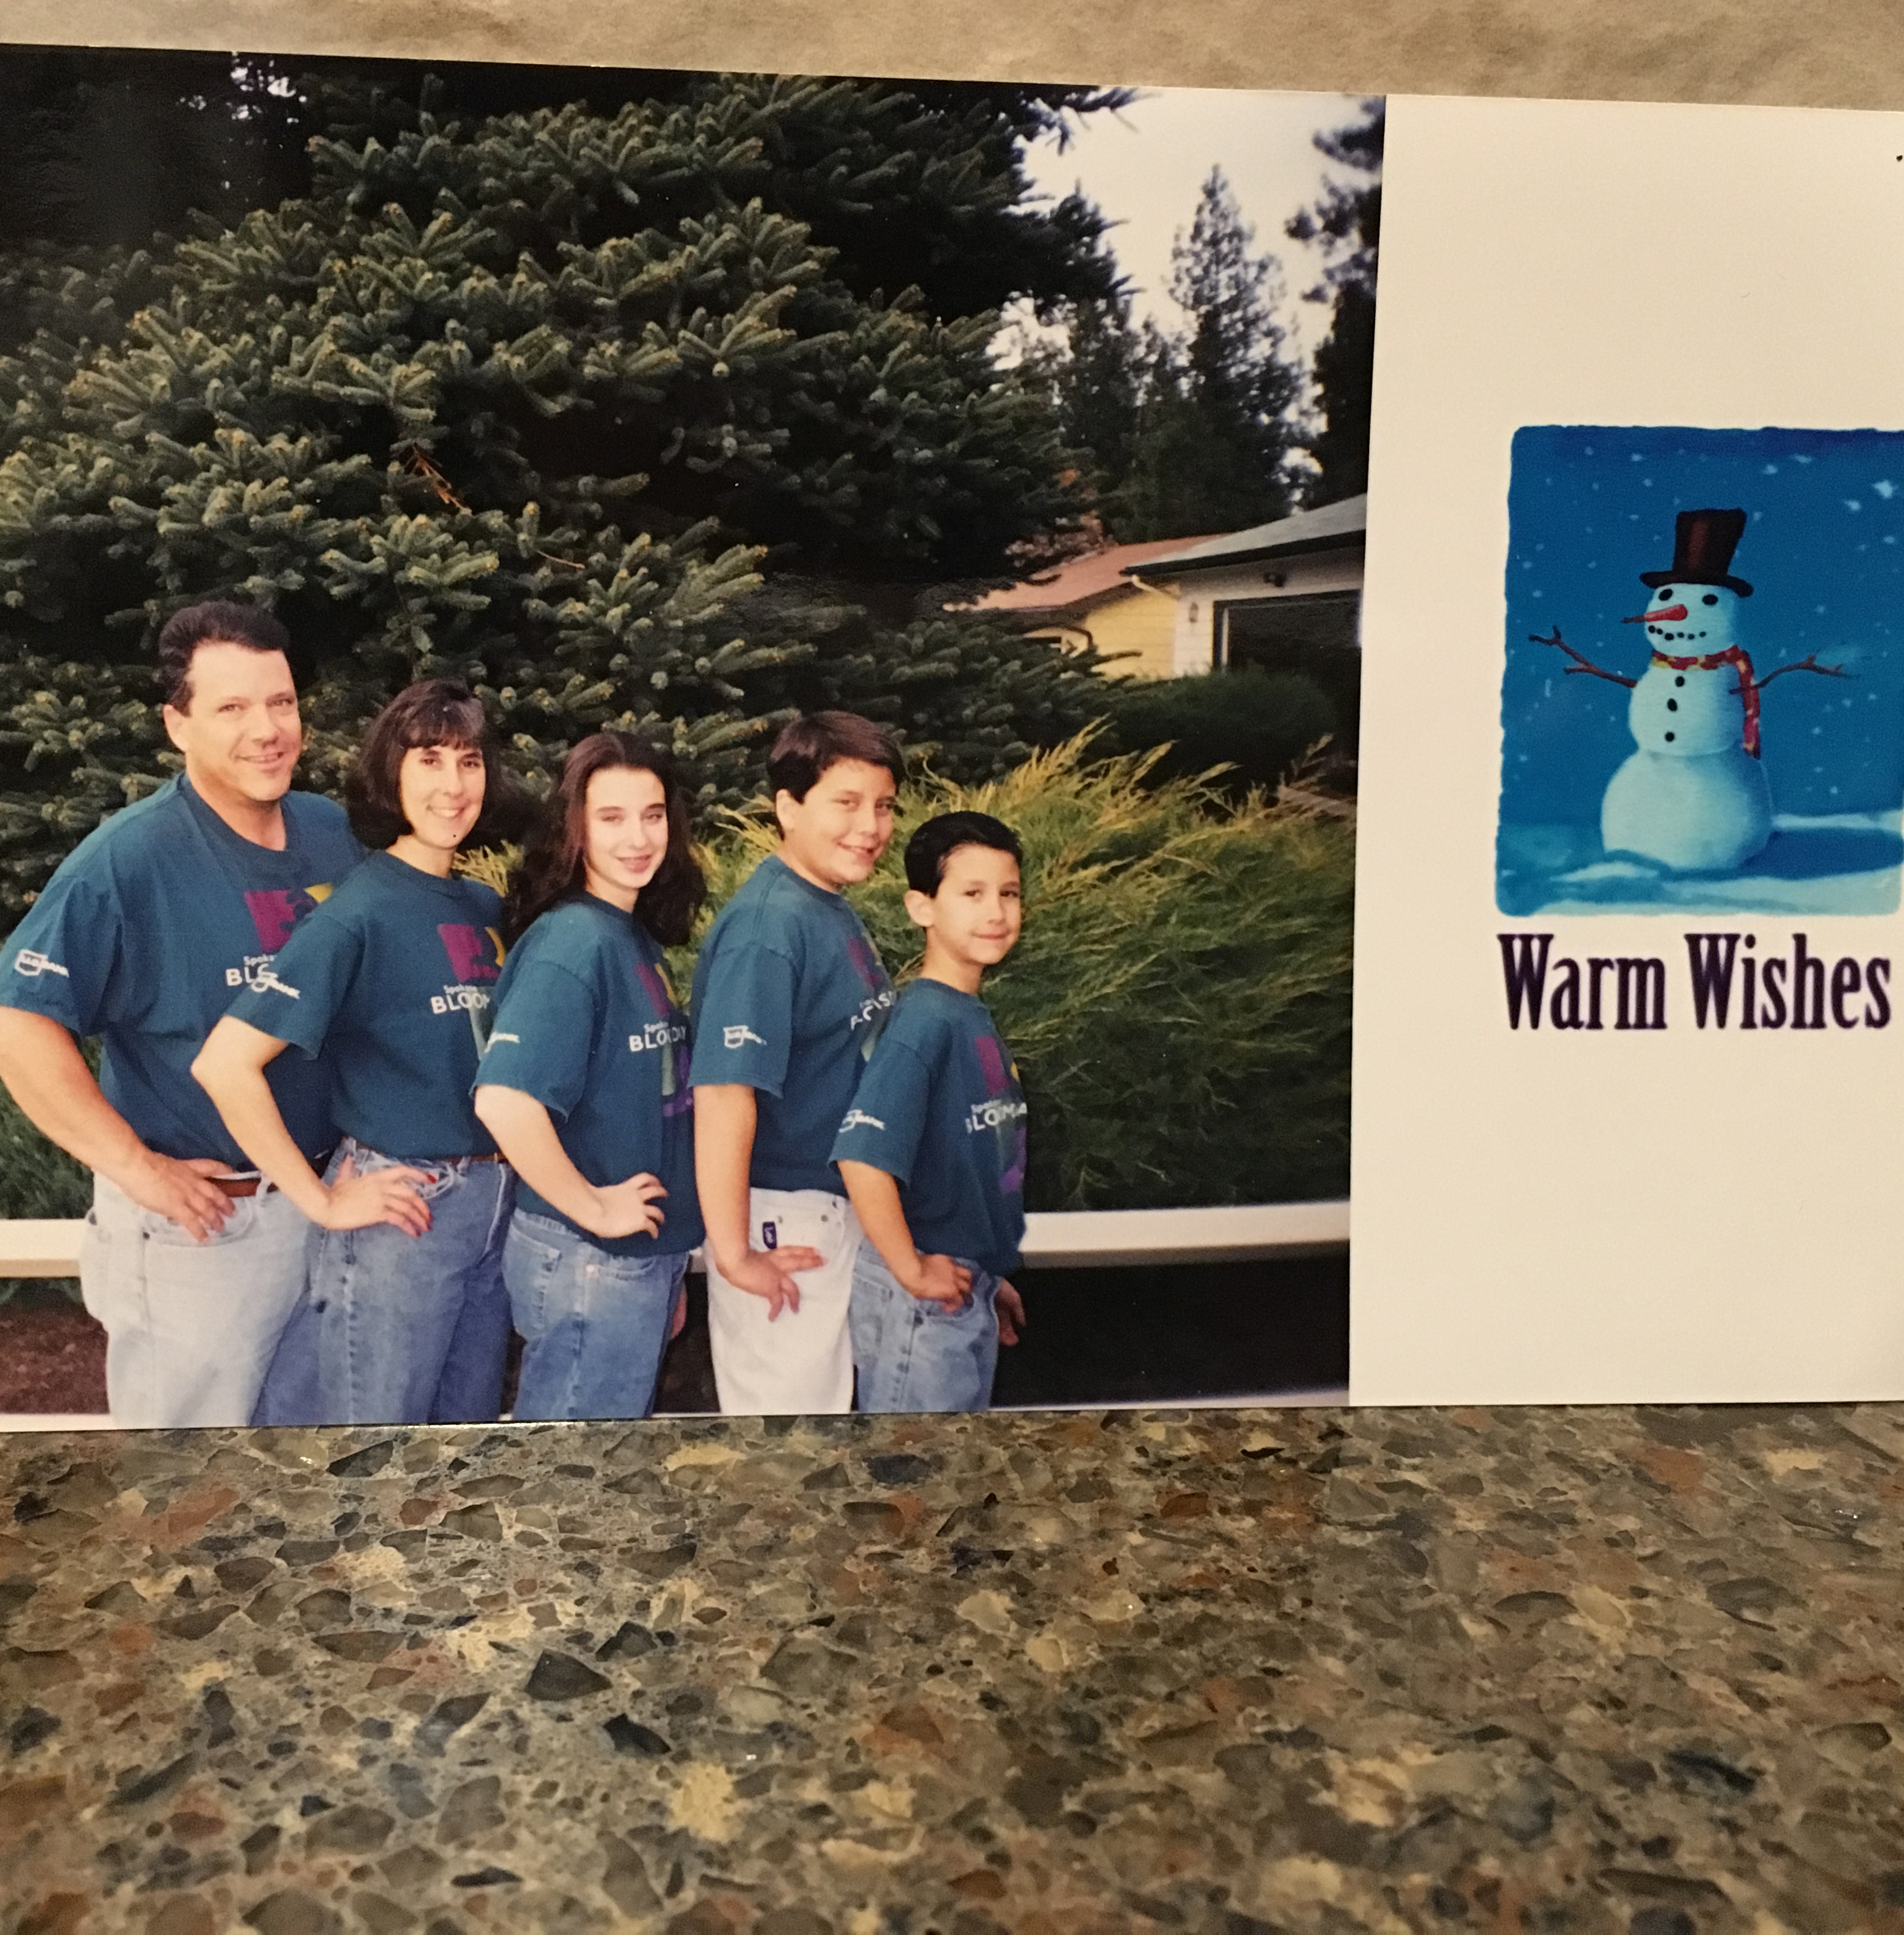 This is my mom's all-time favorite Christmas card. We were all wearing our Bloomsday shirts. Bloomsday is a popular road race in Spokane. This is from 1998.